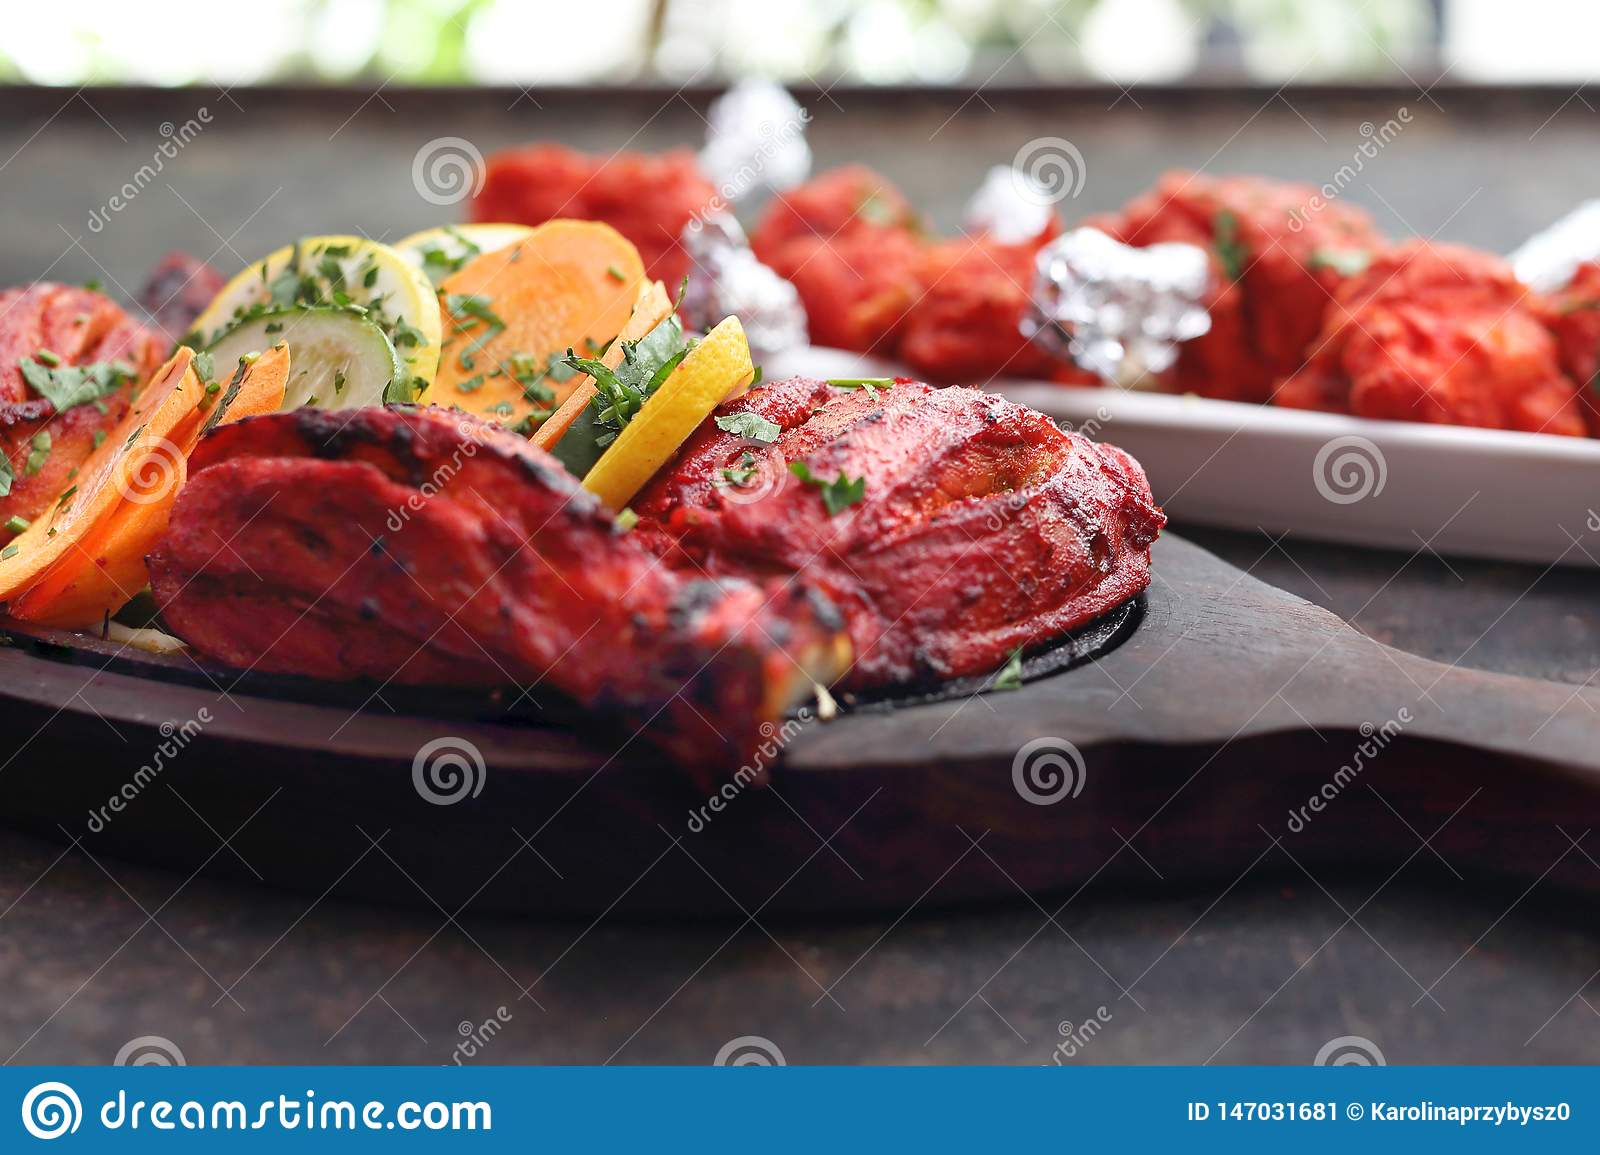 Eastern cuisine. Thai style chicken. Aromatic colorful oriental cuisine